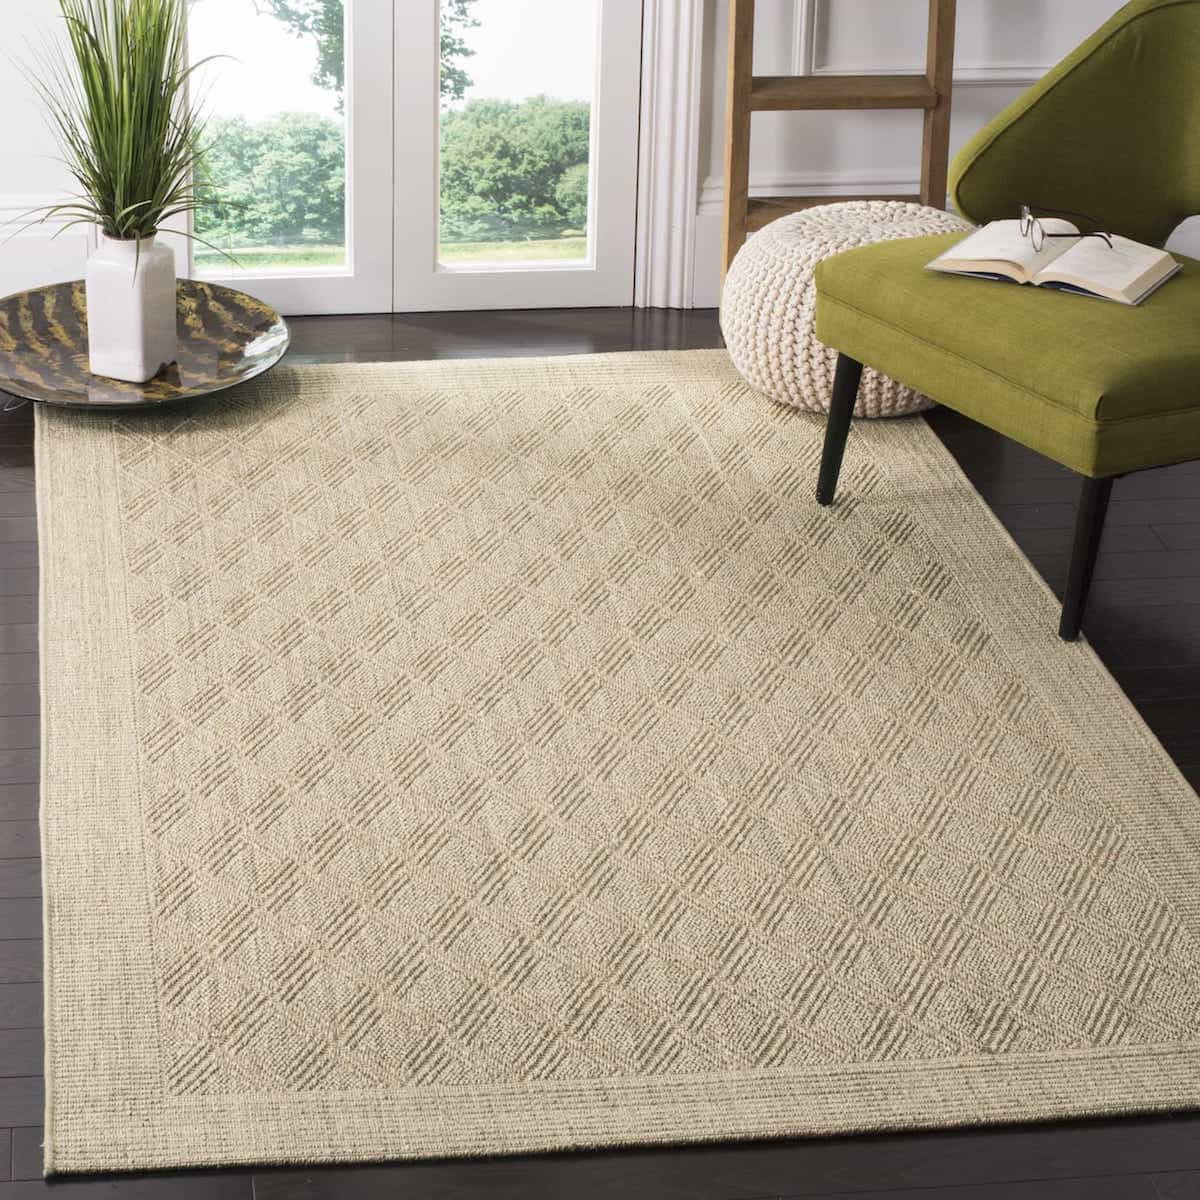 10x14 neutral brown sisal rug for living room area